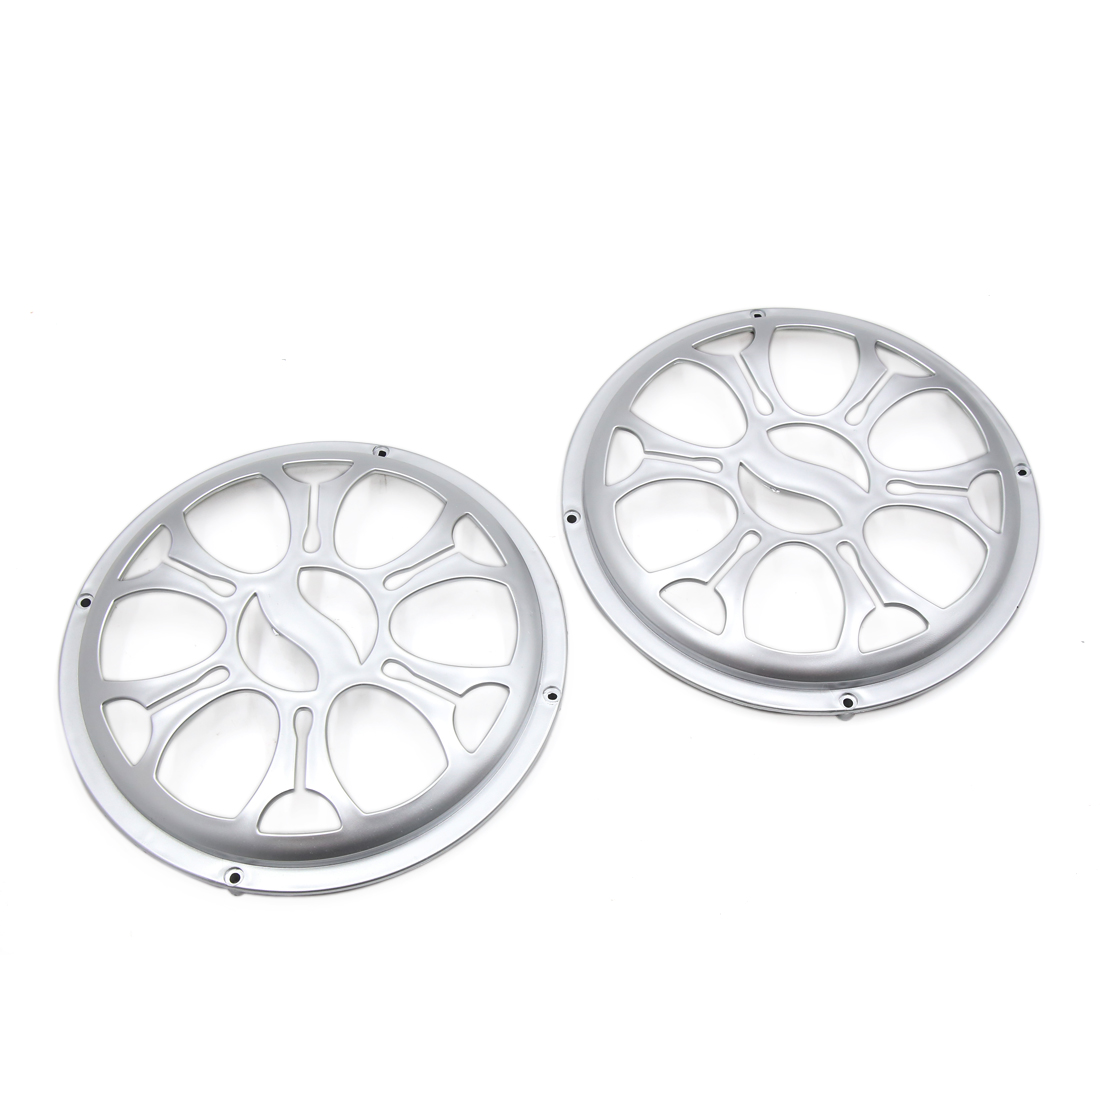 "2 Pcs 8"" Dia Silver Tone Plastic Audio Speaker Subwoofer Dust Cover Protector for Auto Car"